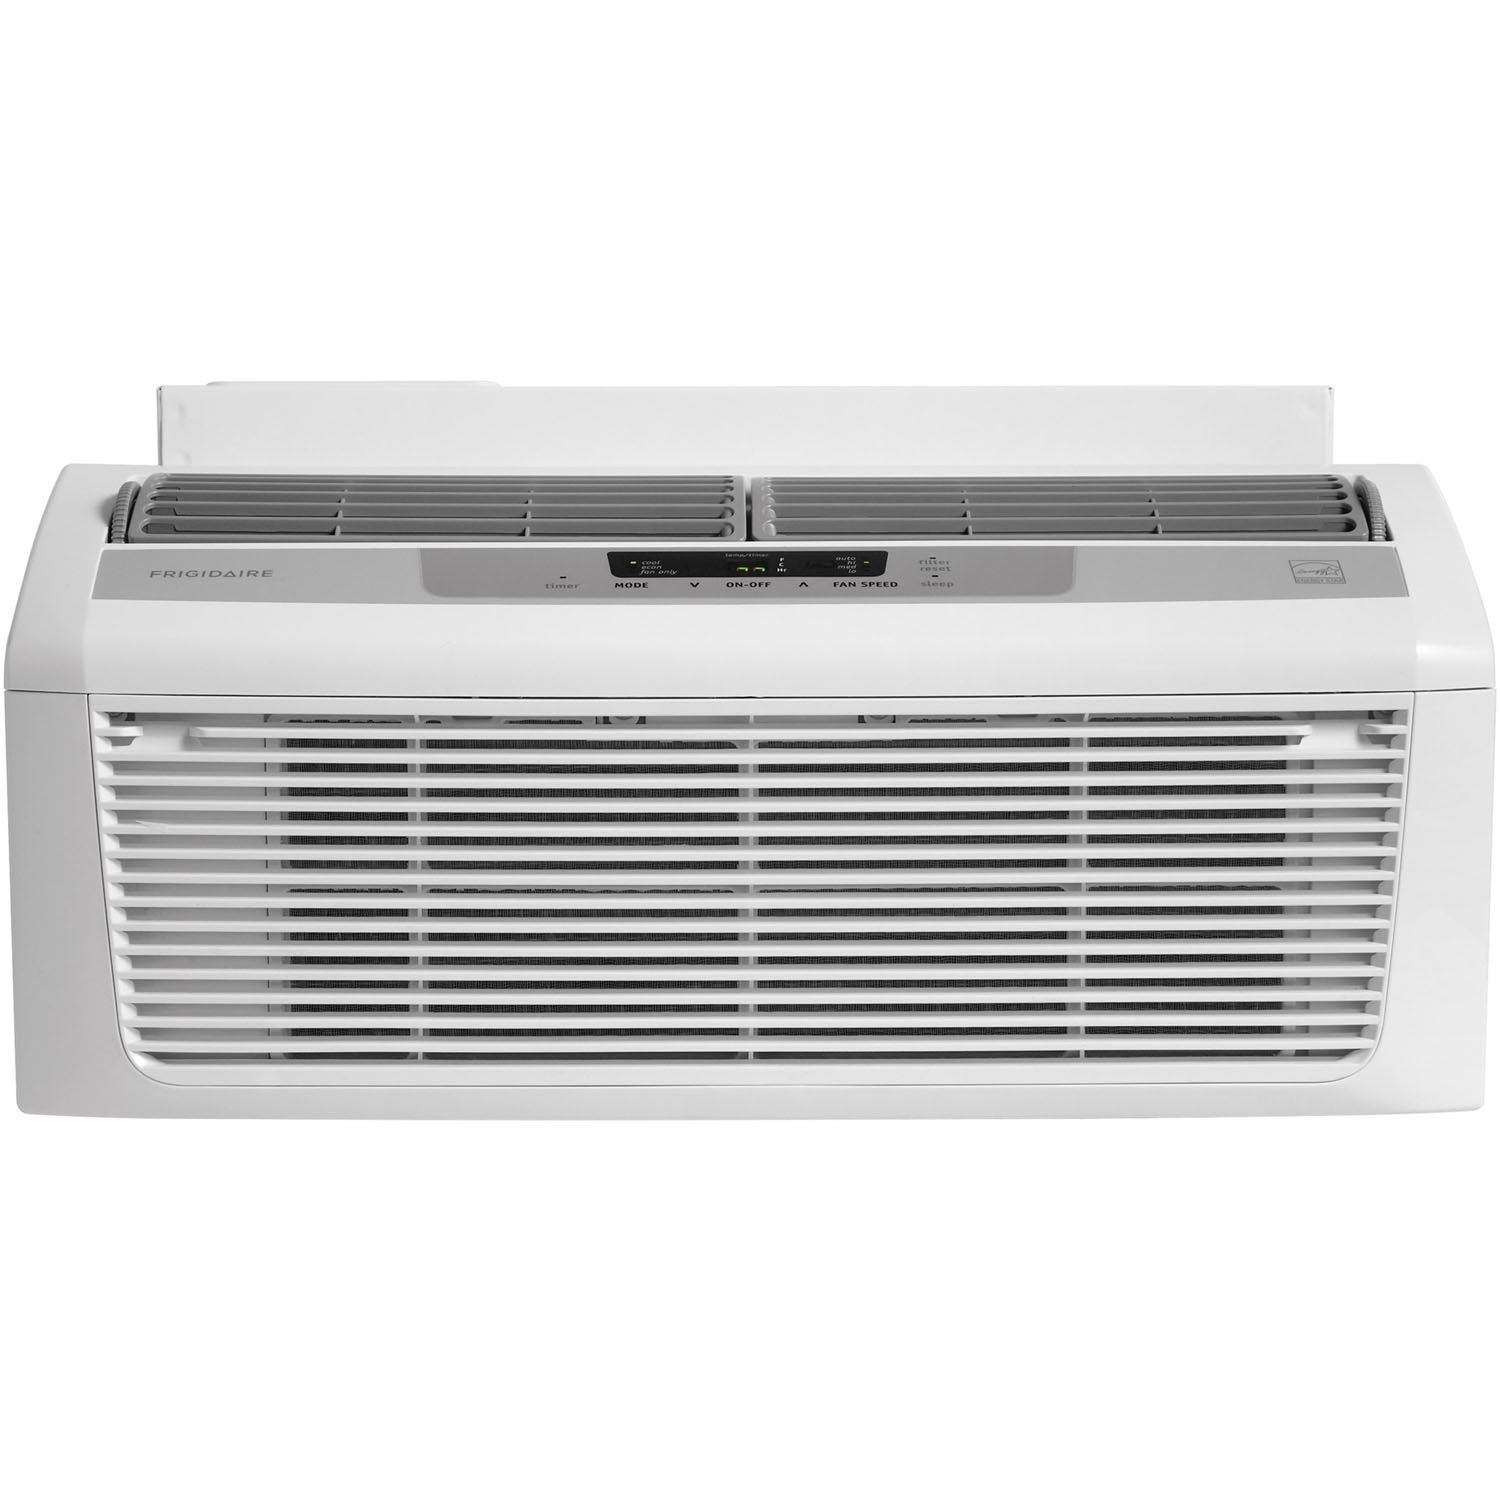 Wholesale High Quality Air Cooling Summer And Winter: Top 10 Best Window Air Conditioners Reviews 2018